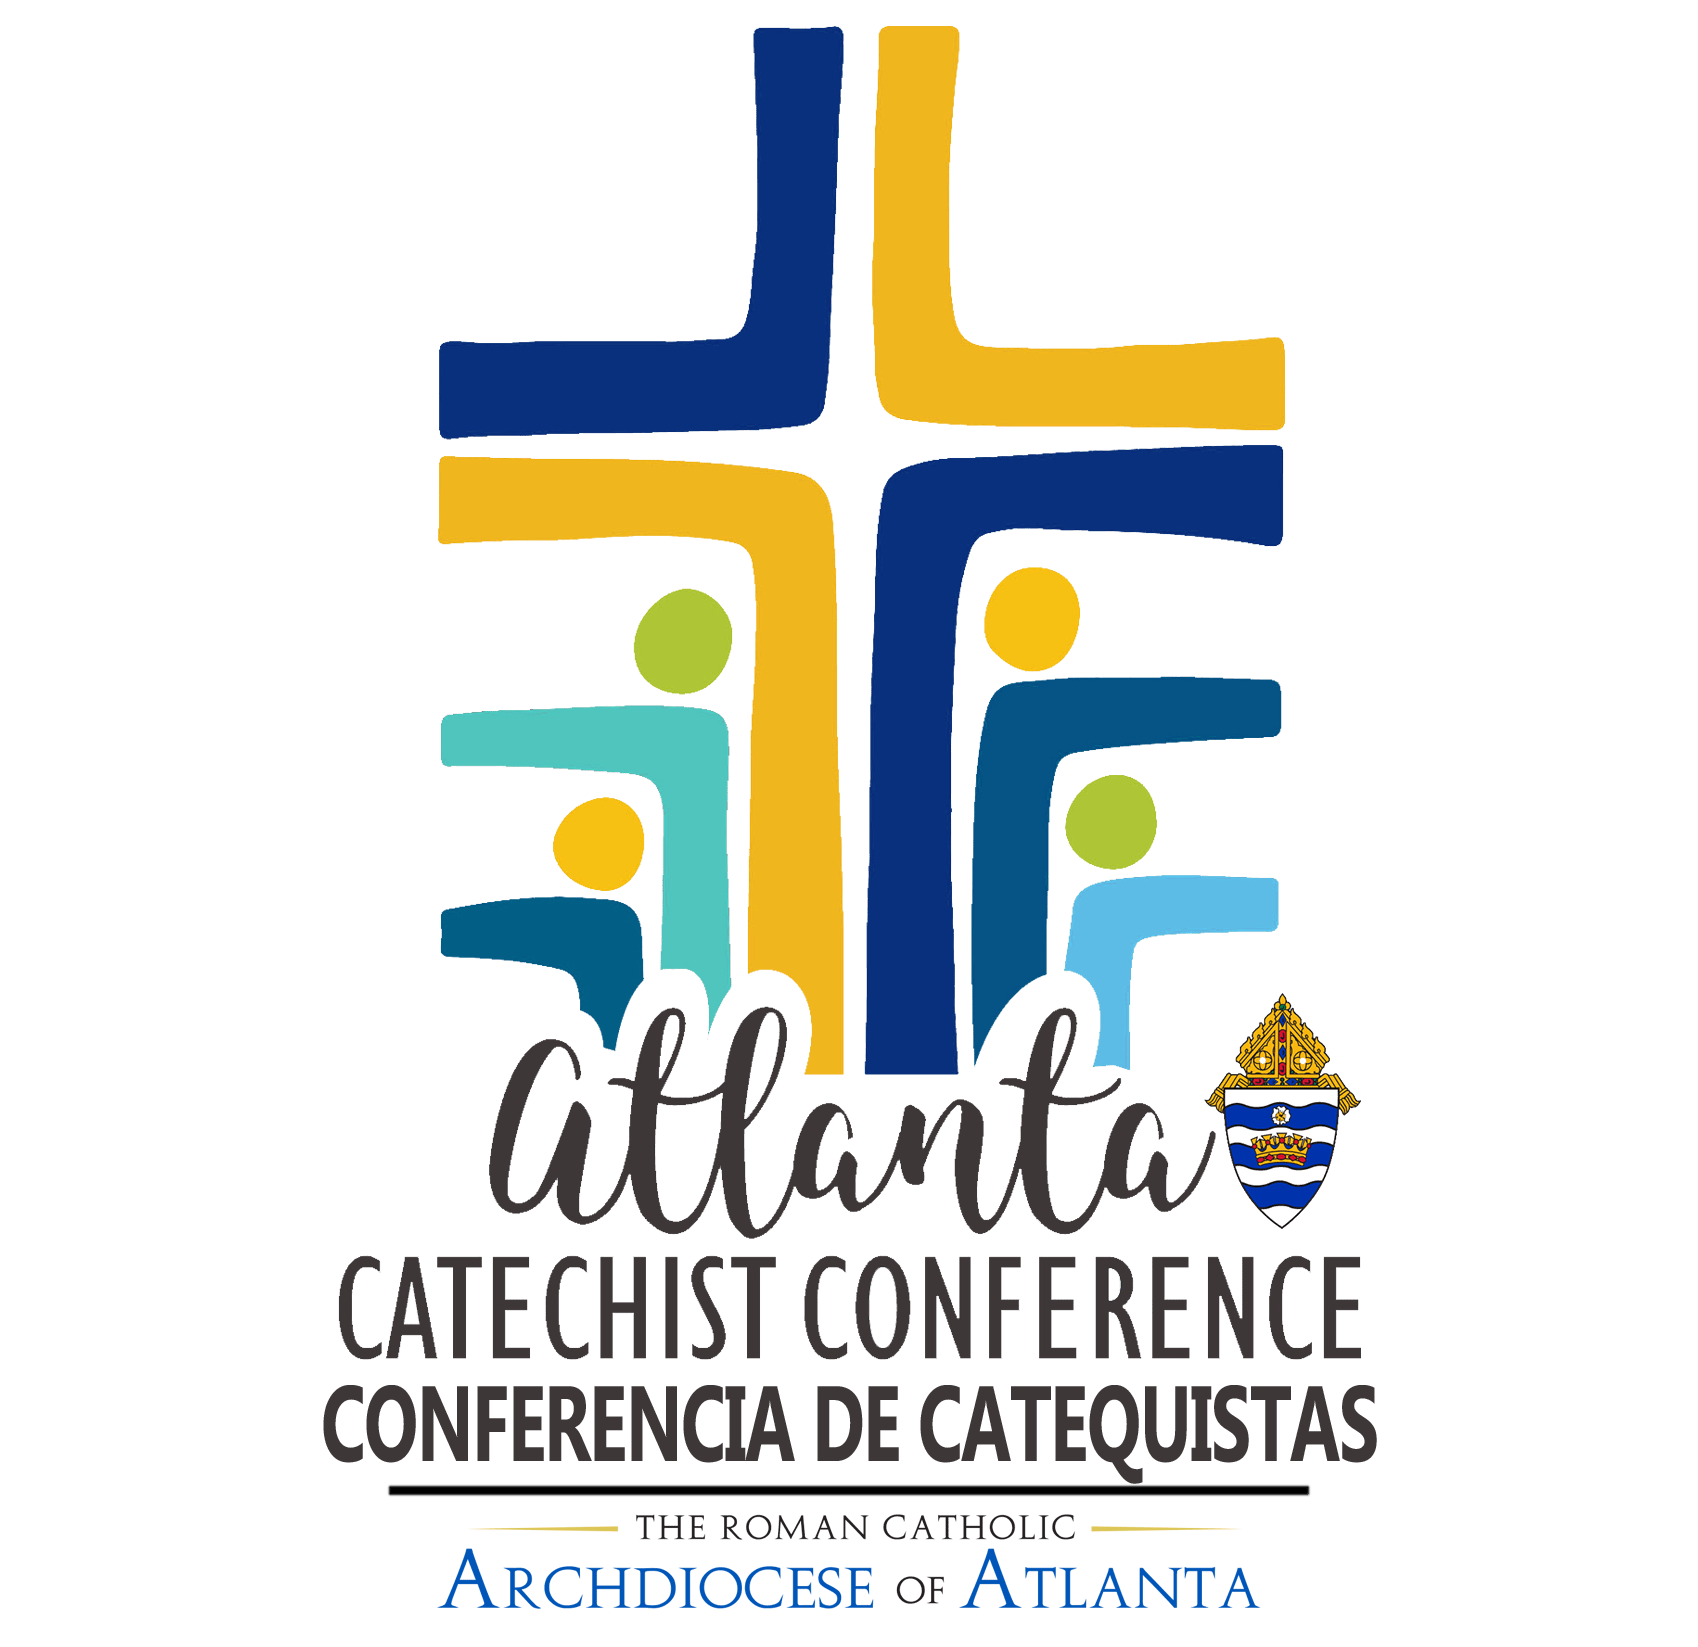 Atlanta Catechist Conference Bilingual